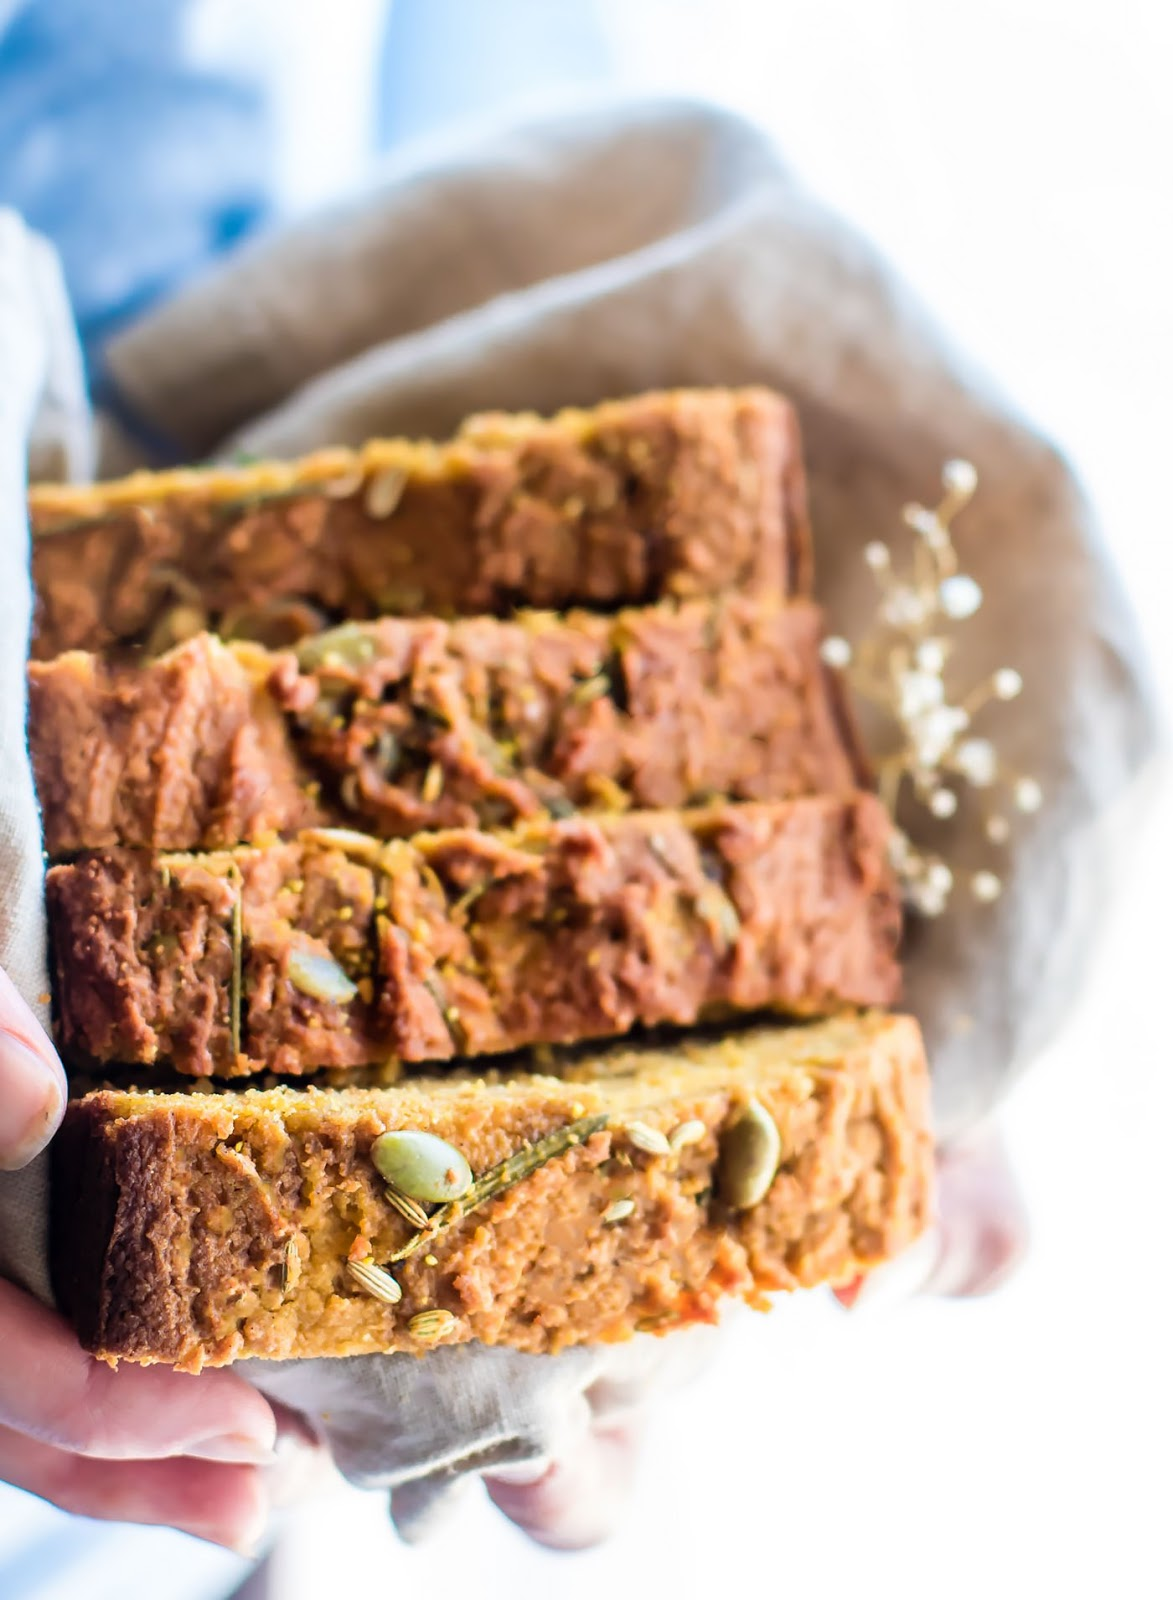 Rosemary Paleo Pumpkin Bread